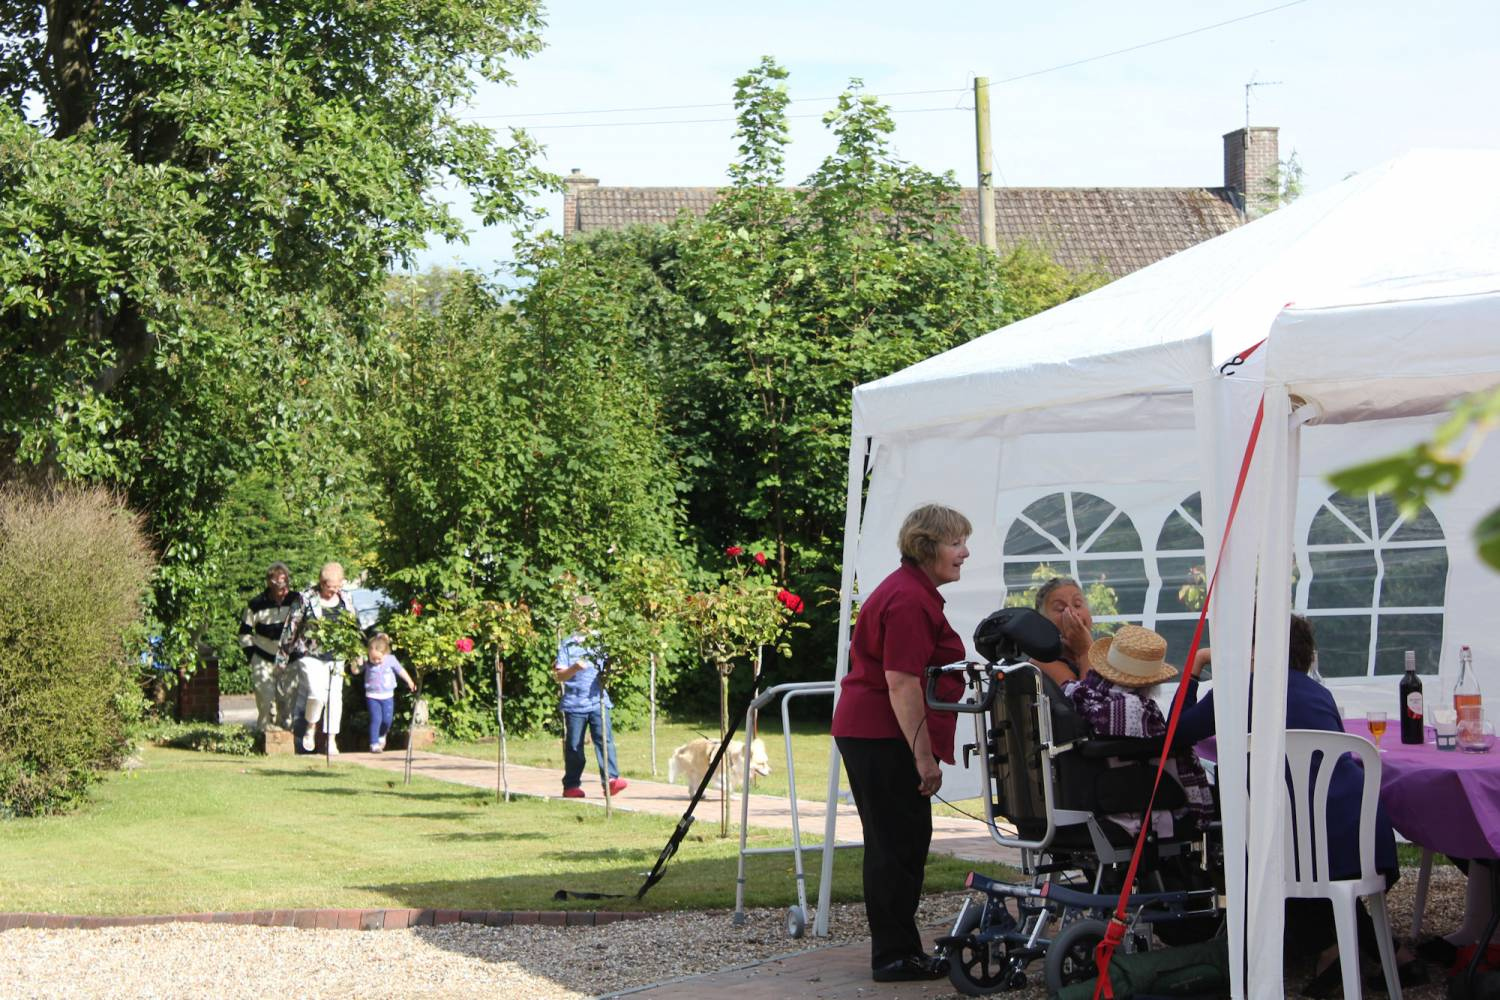 Summer BBQ at Bradfield Residential Home, Walmer, Deal, Kent.